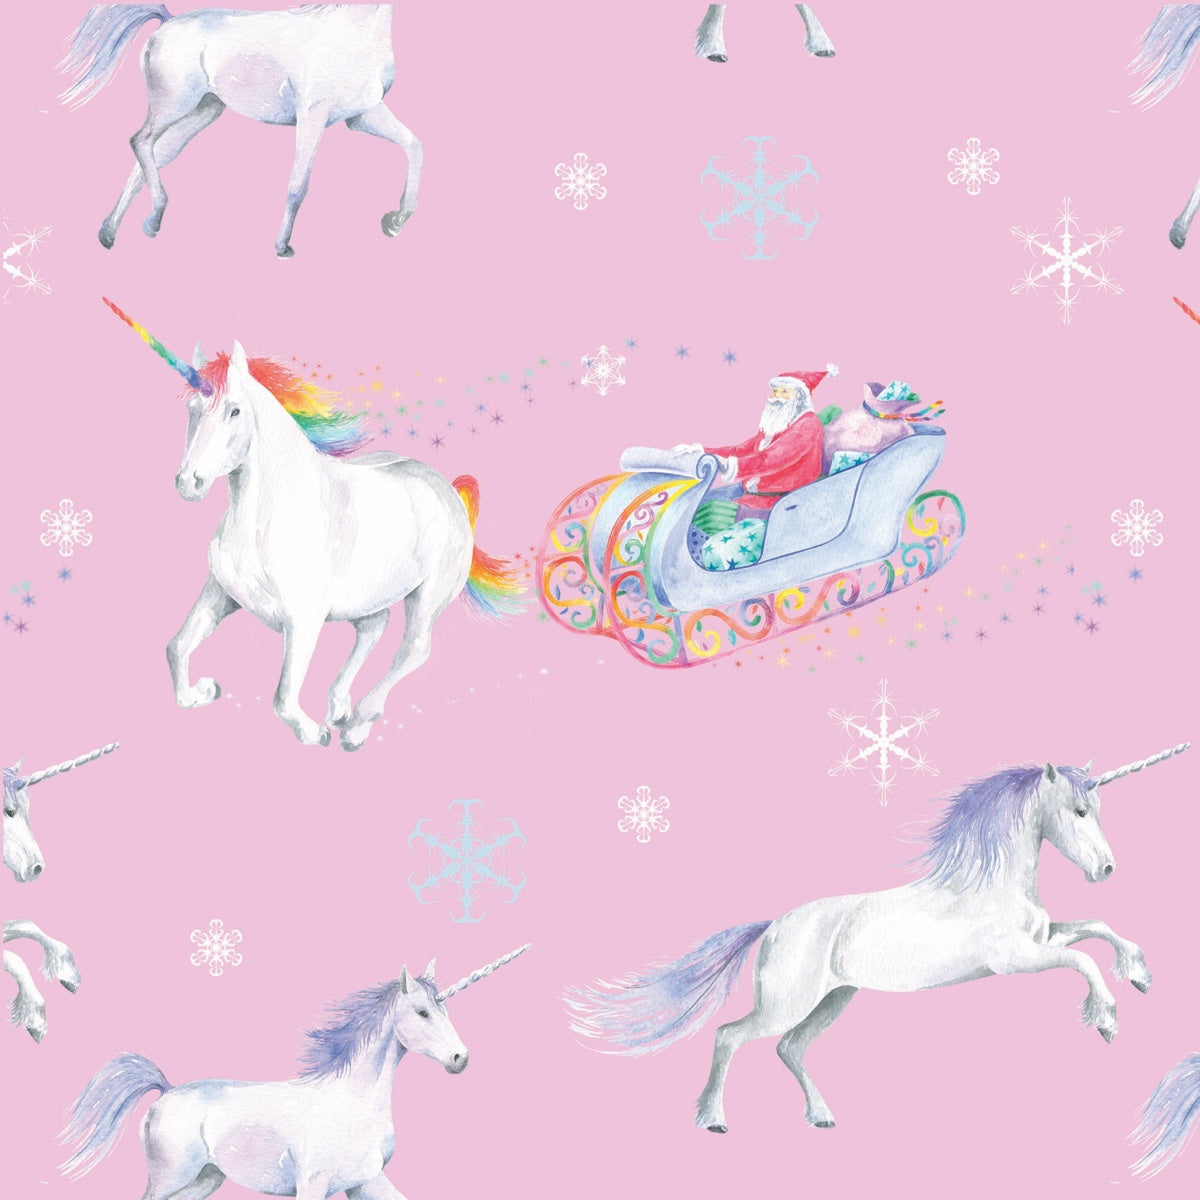 unicorn unicorns Christmas gift wrapping paper Ceinwen Campbell and The Arty Penguin